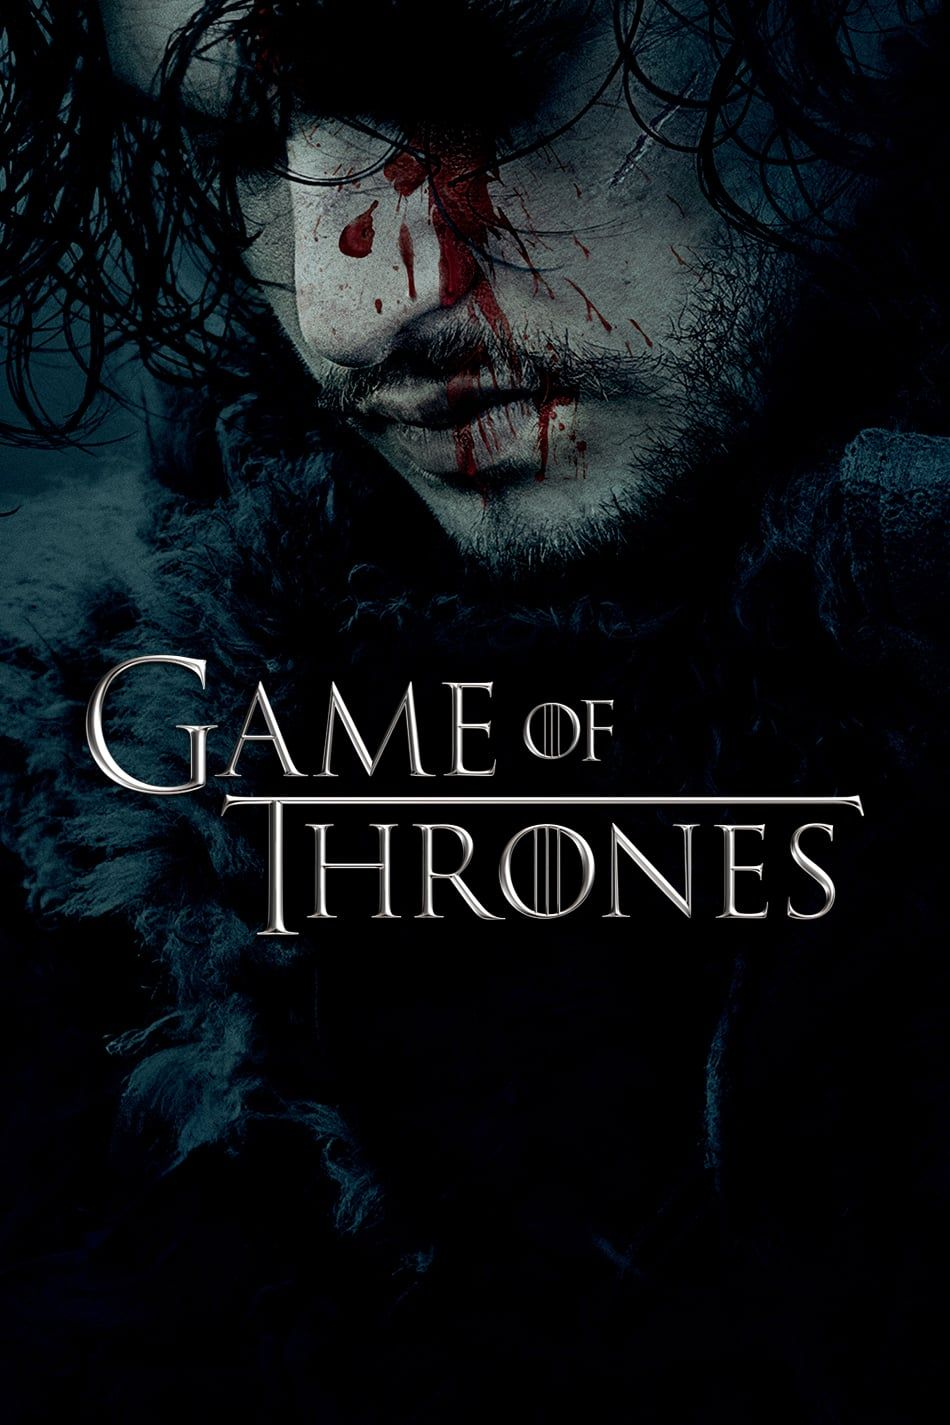 Game Of Thrones Tv Series Full Episodes Hd Quality Enjoy Full Episodes Click Link Below Hbo Game Of Thrones Game Of Thrones Promo Game Of Thrones Poster